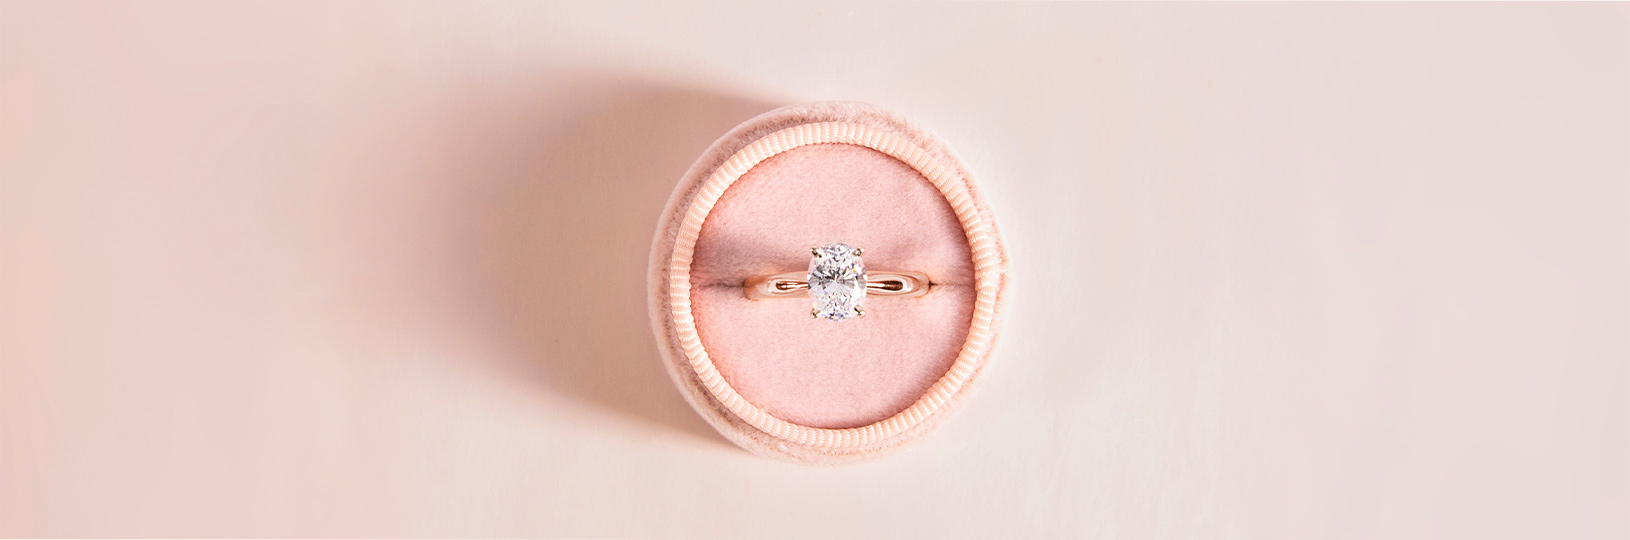 An oval cut solitaire engagement ring featuring a lab grown diamond